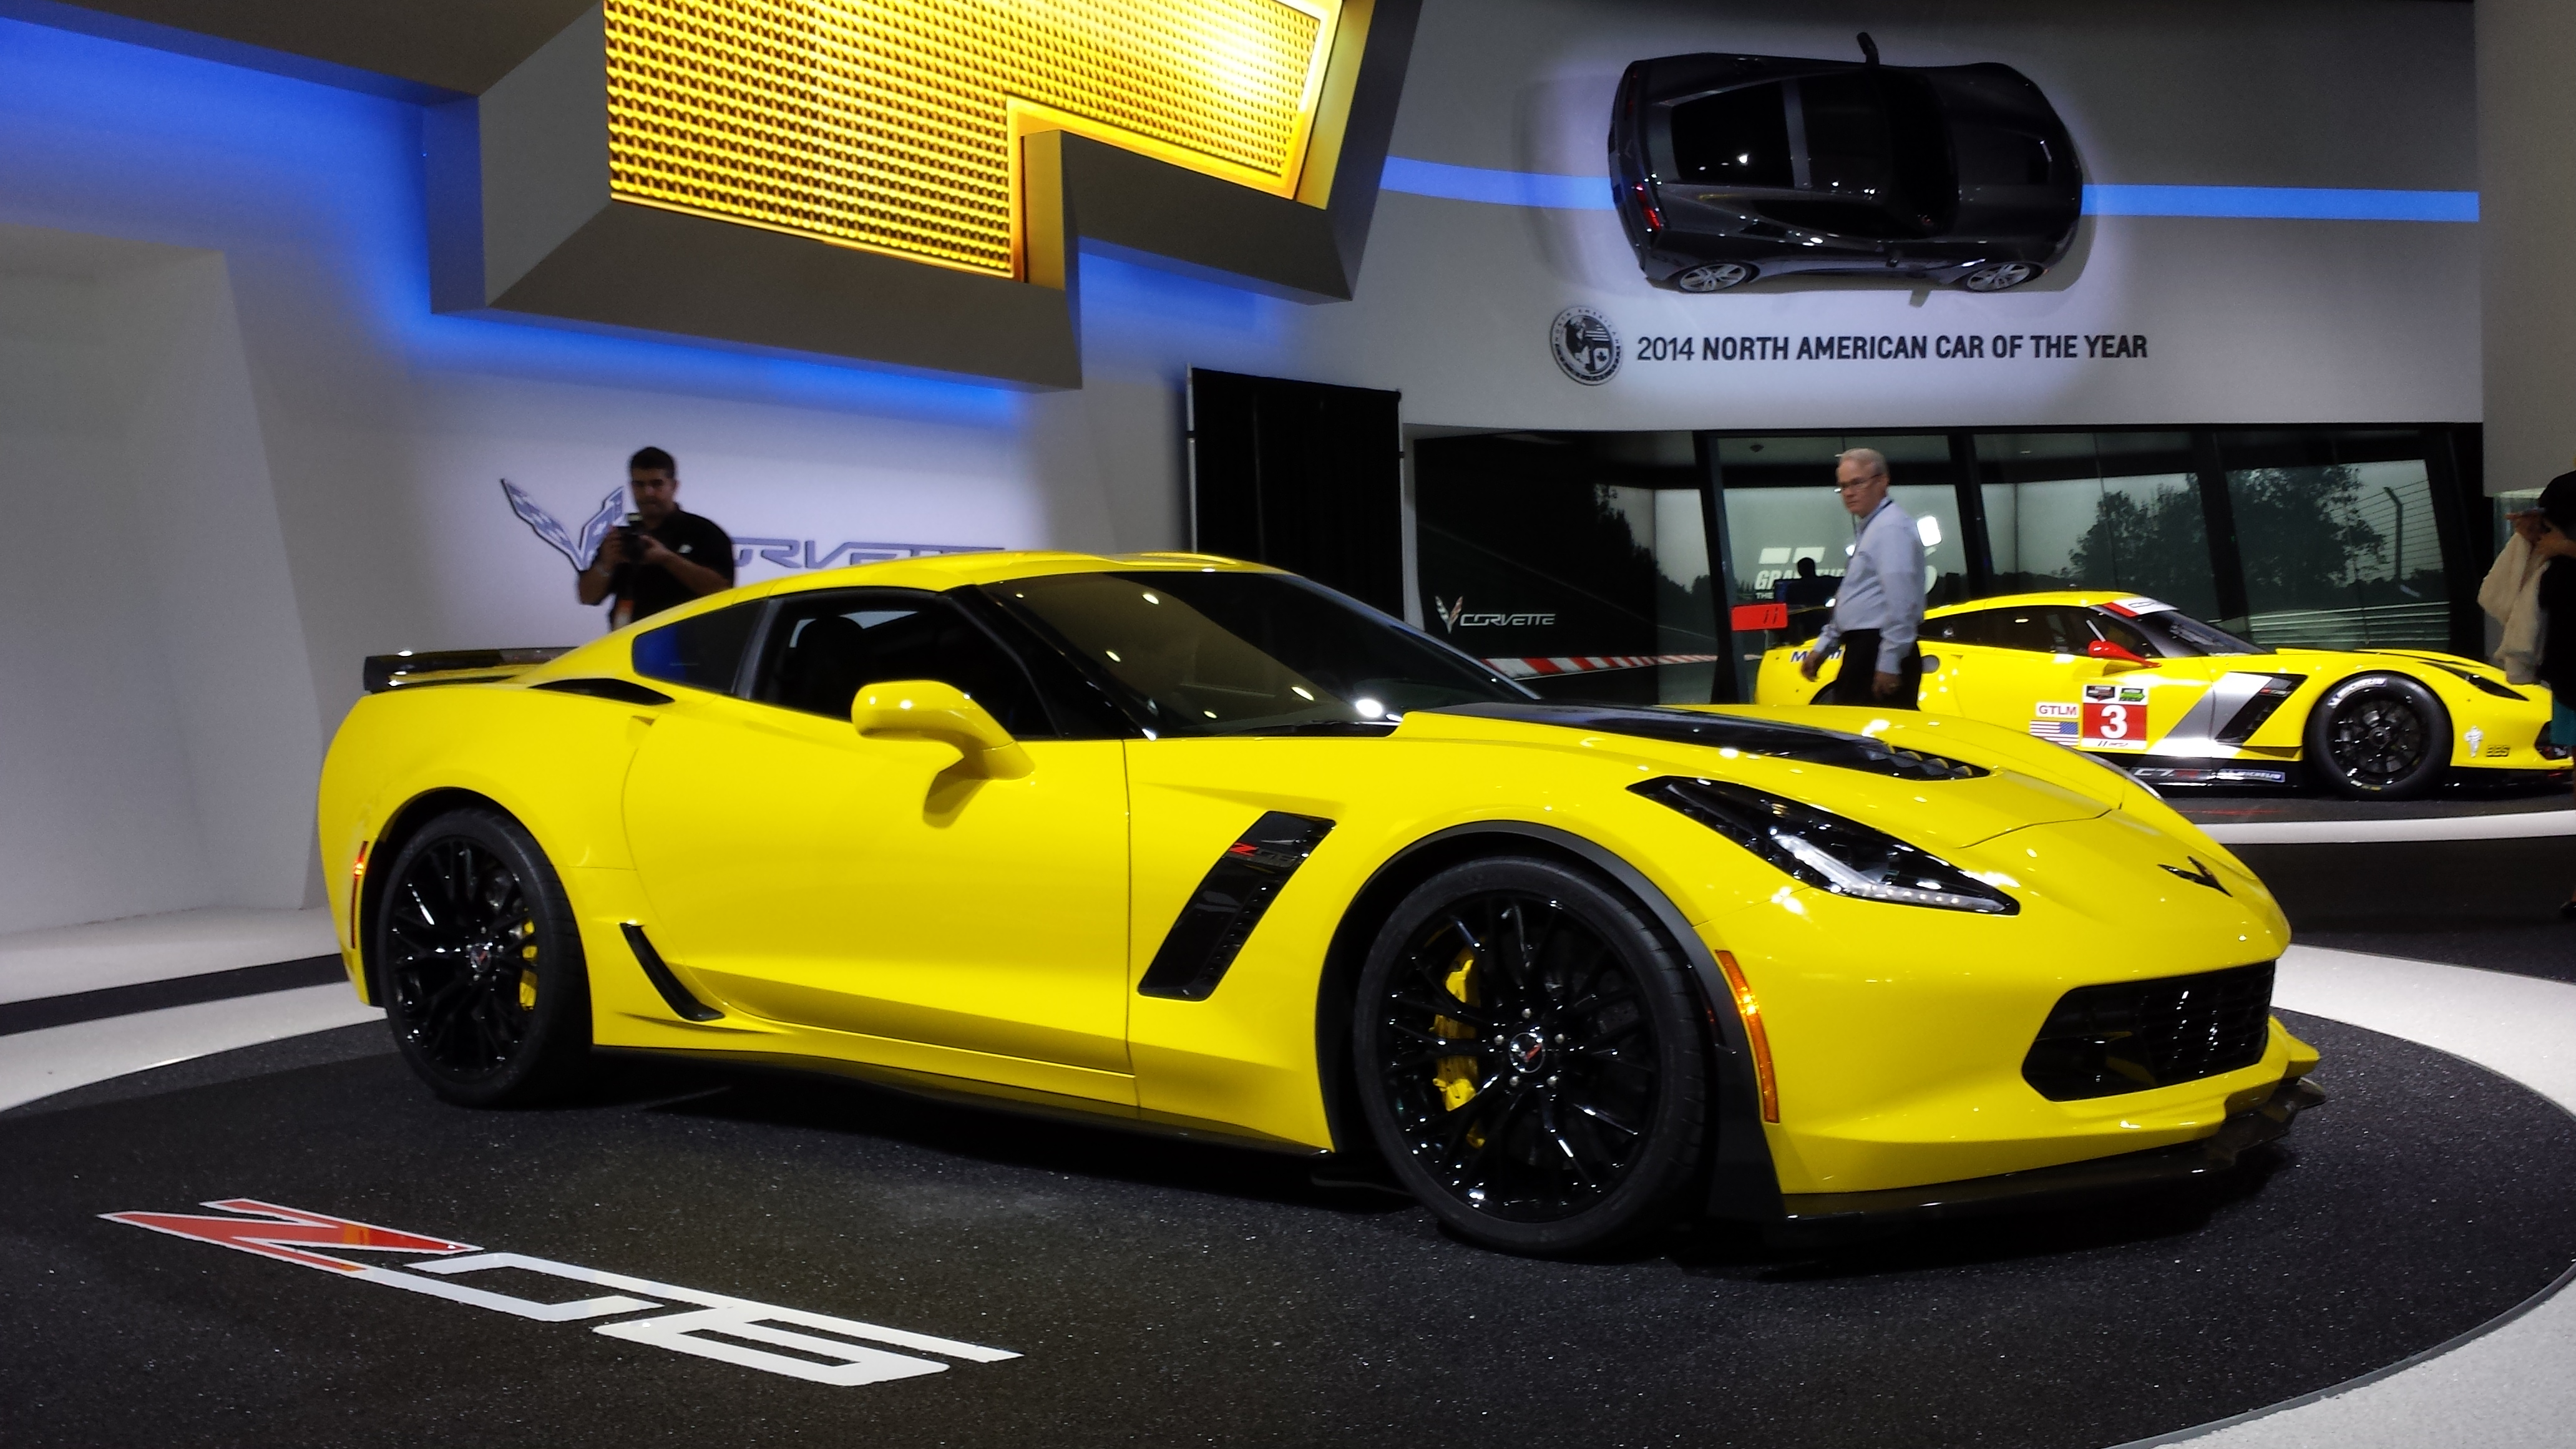 Exceptionnel File:2015 Chevy Corvette Stingray Z06 Debut At Detriot Auto Show 9